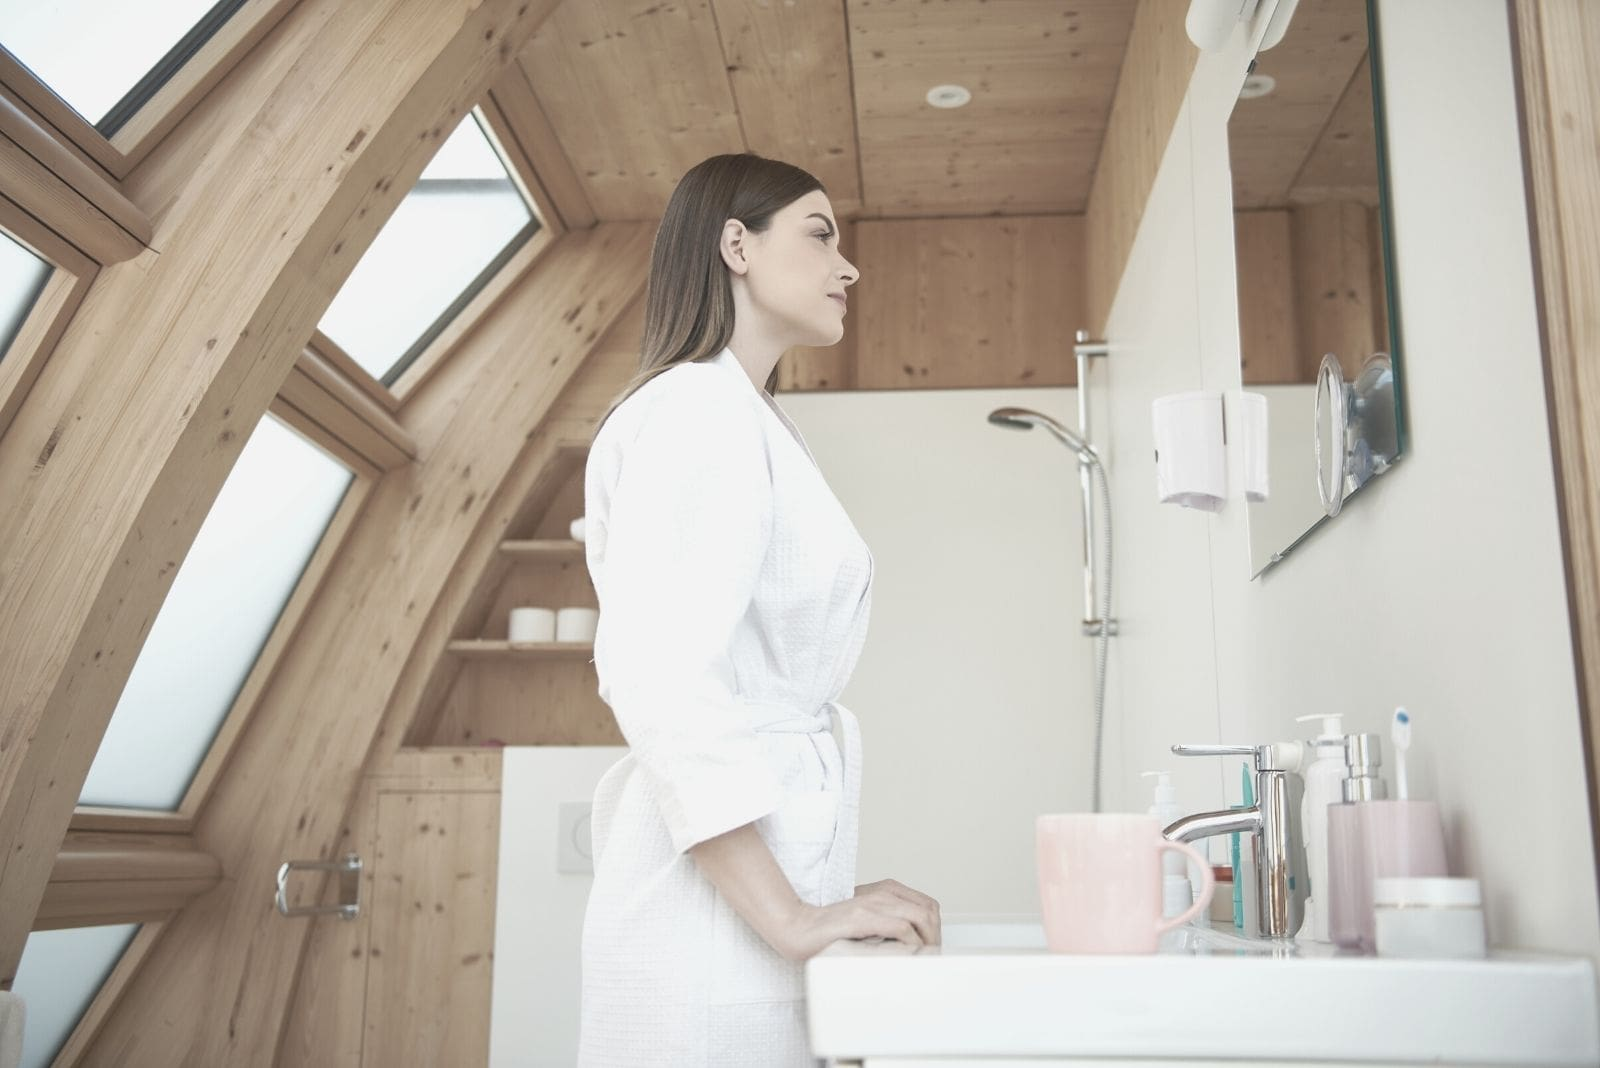 beautiful woman smiling and looking at the mirro inside the bathroom wearing a robe in sideview low angle